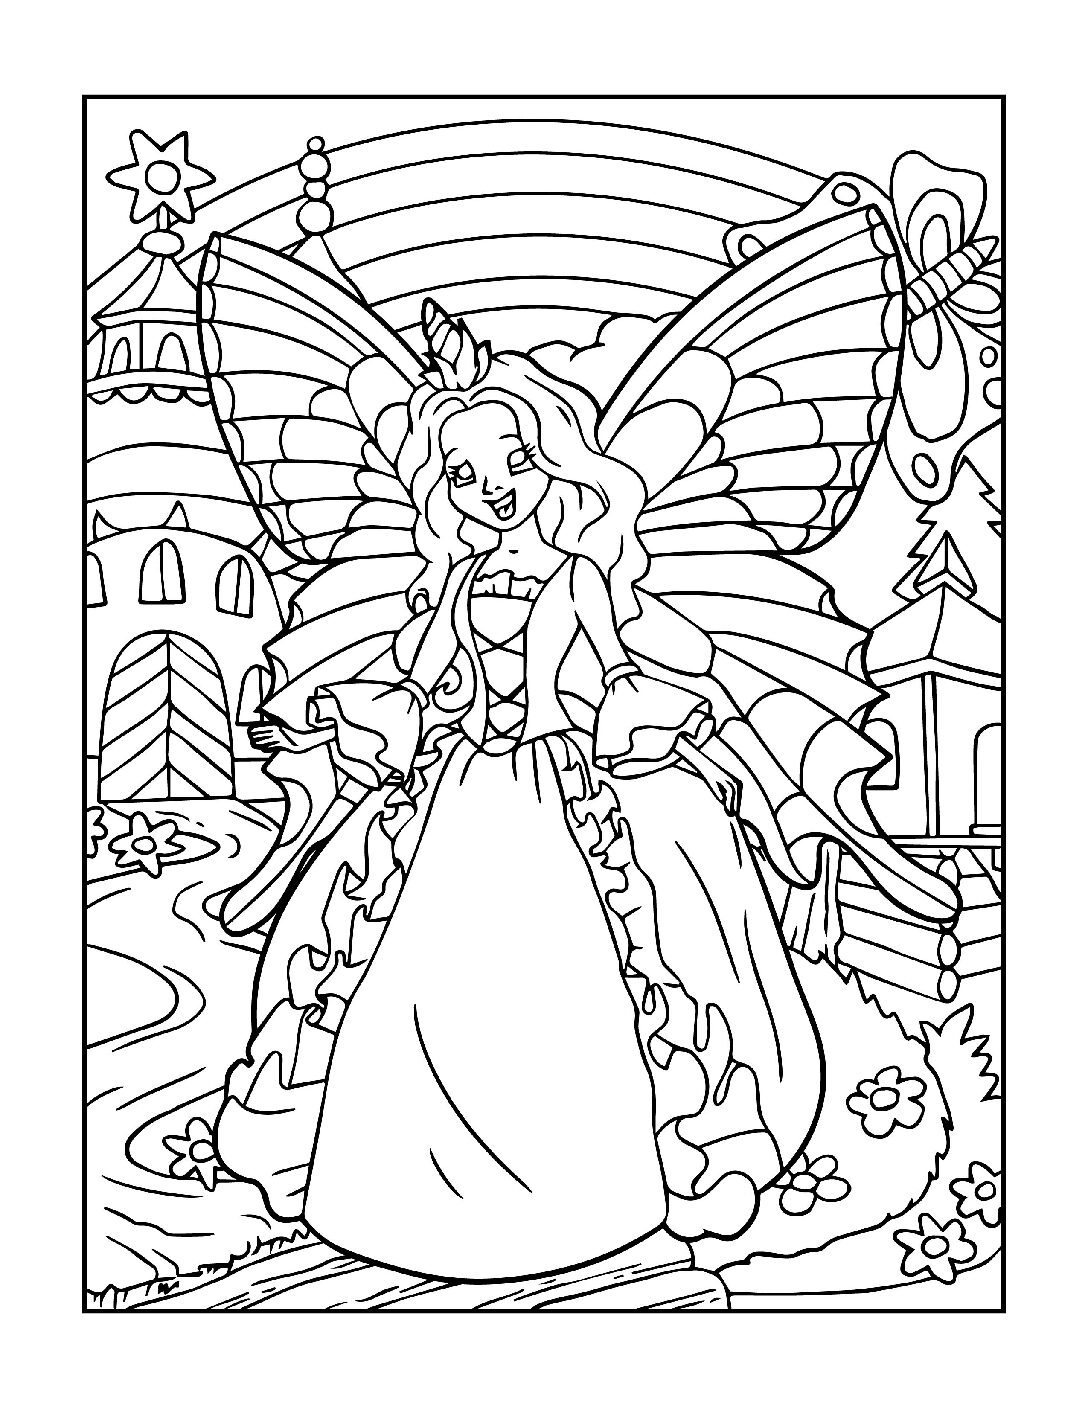 Coloring-Pages-Fairies-13-01-pdf Free Printable Fairy Colouring Pages